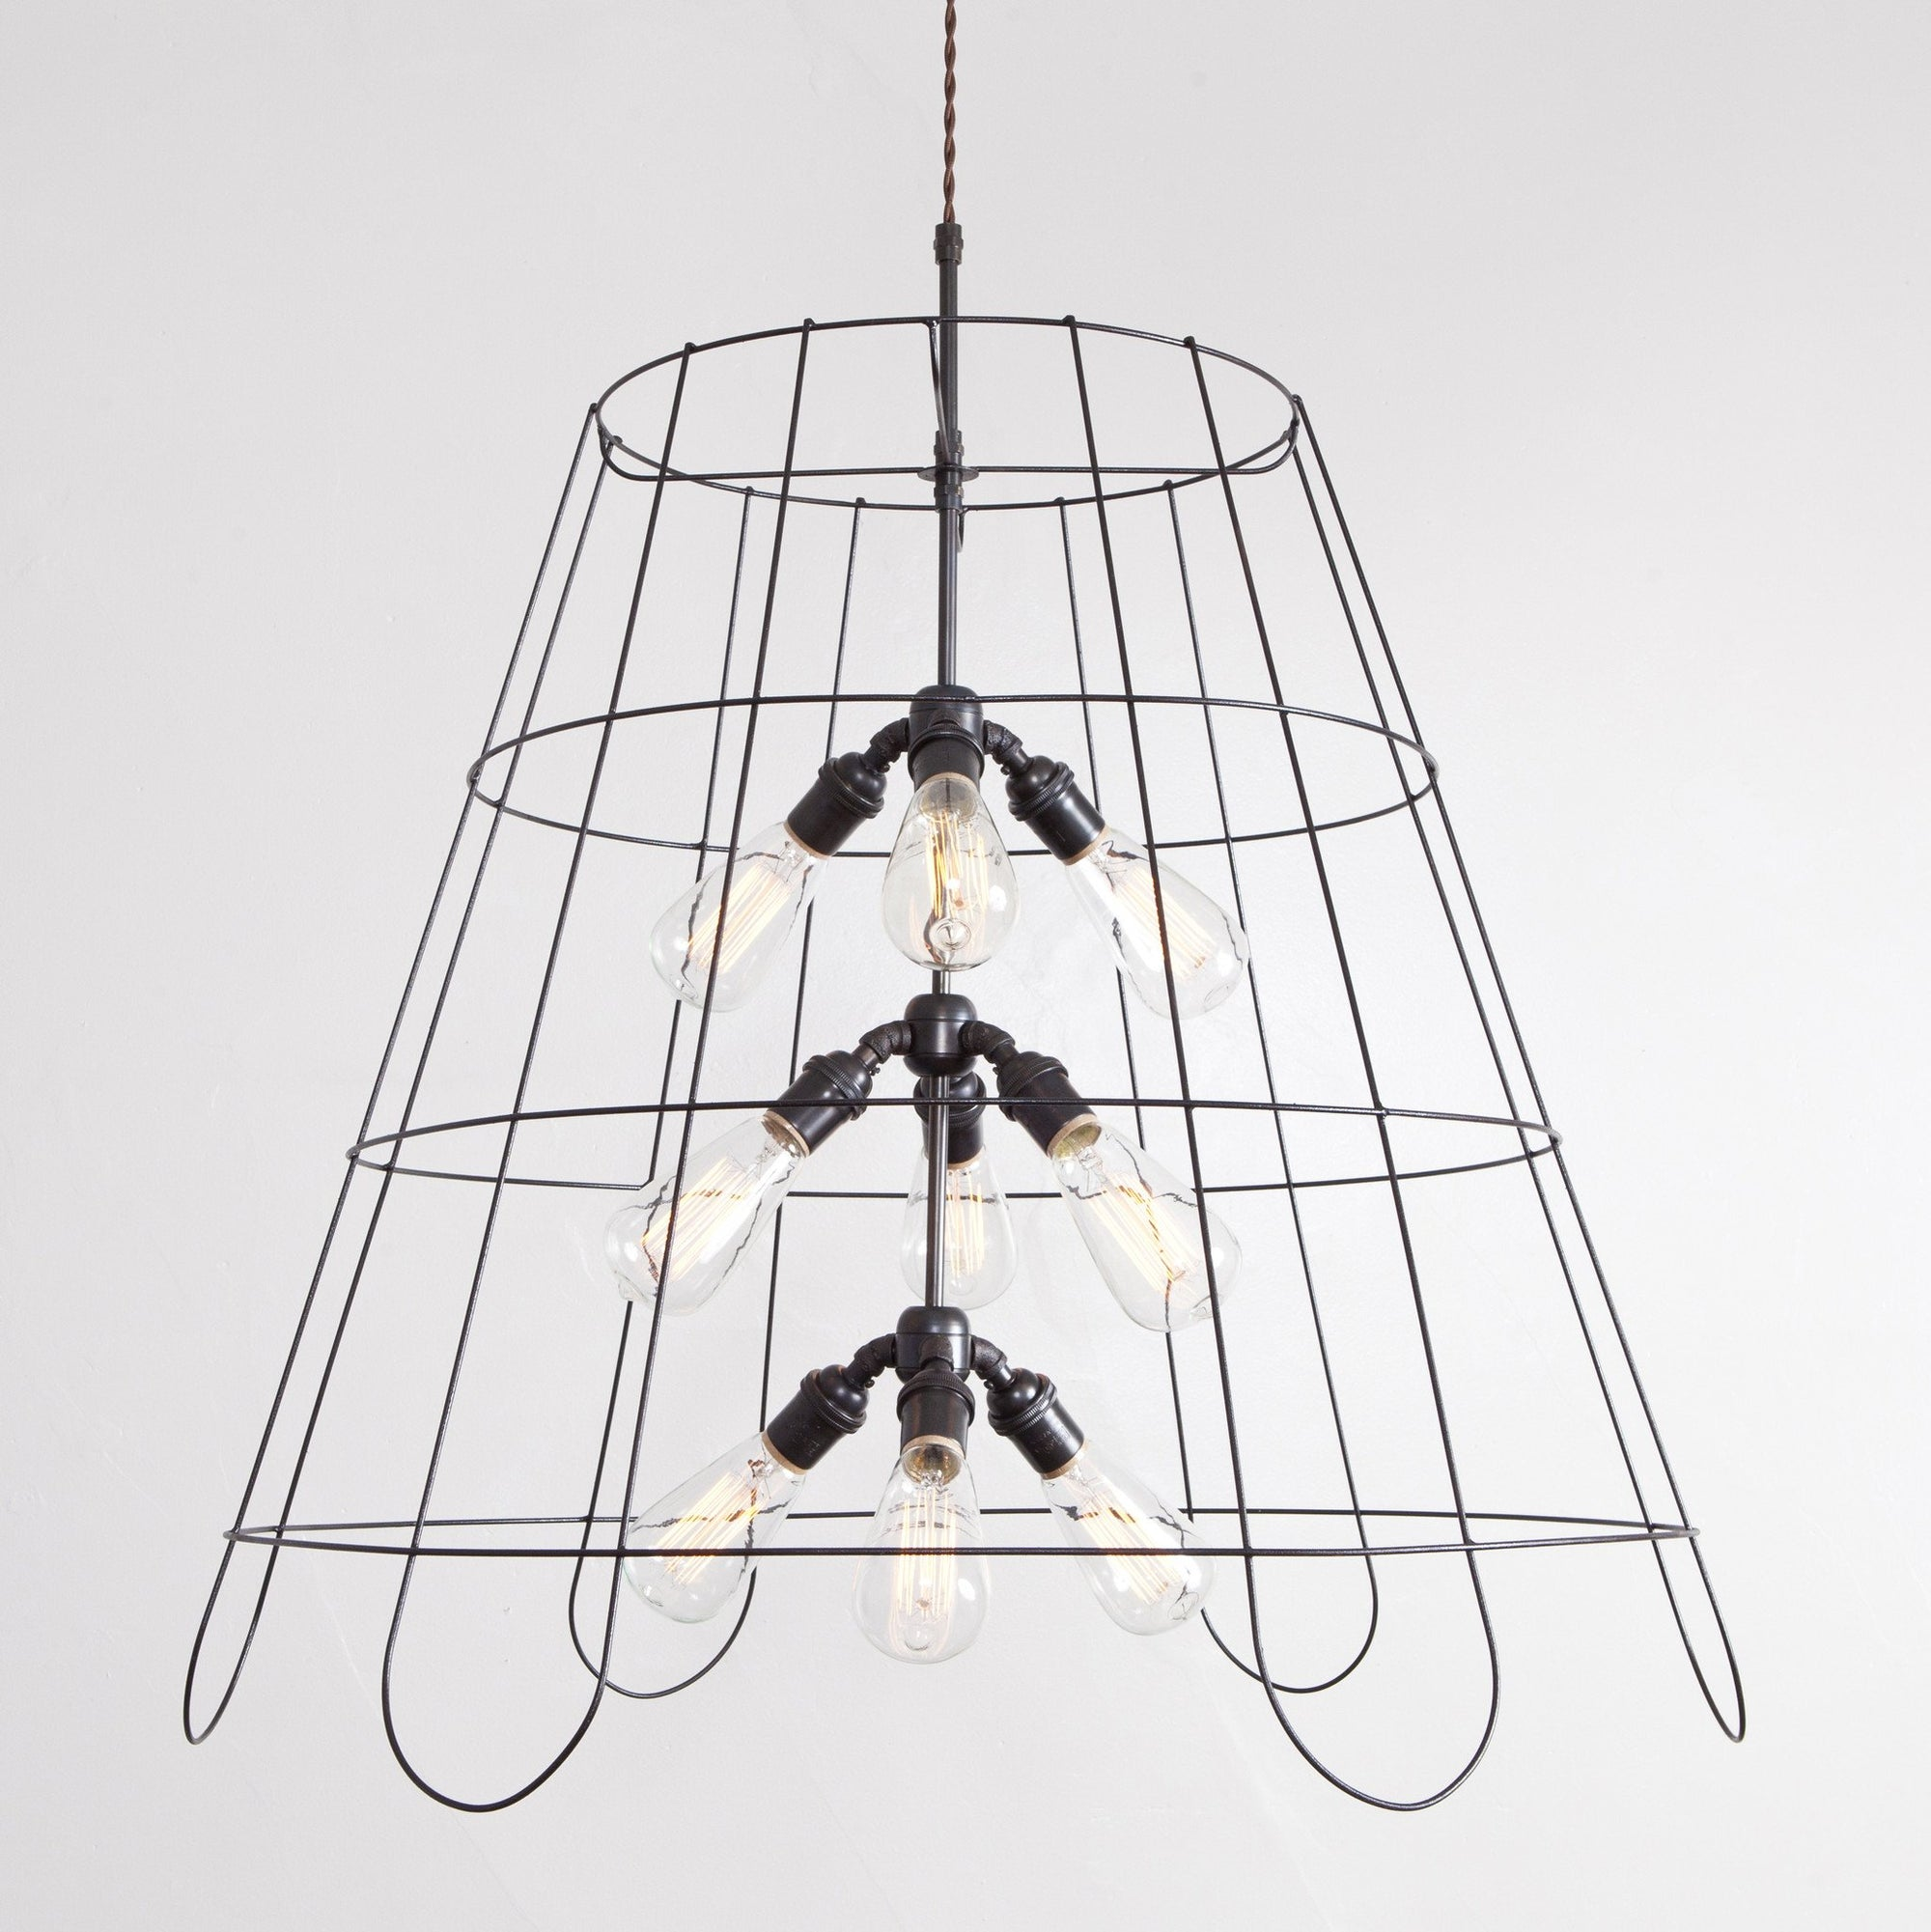 Vintage Lampshade Frame Chandelier - 9 Light